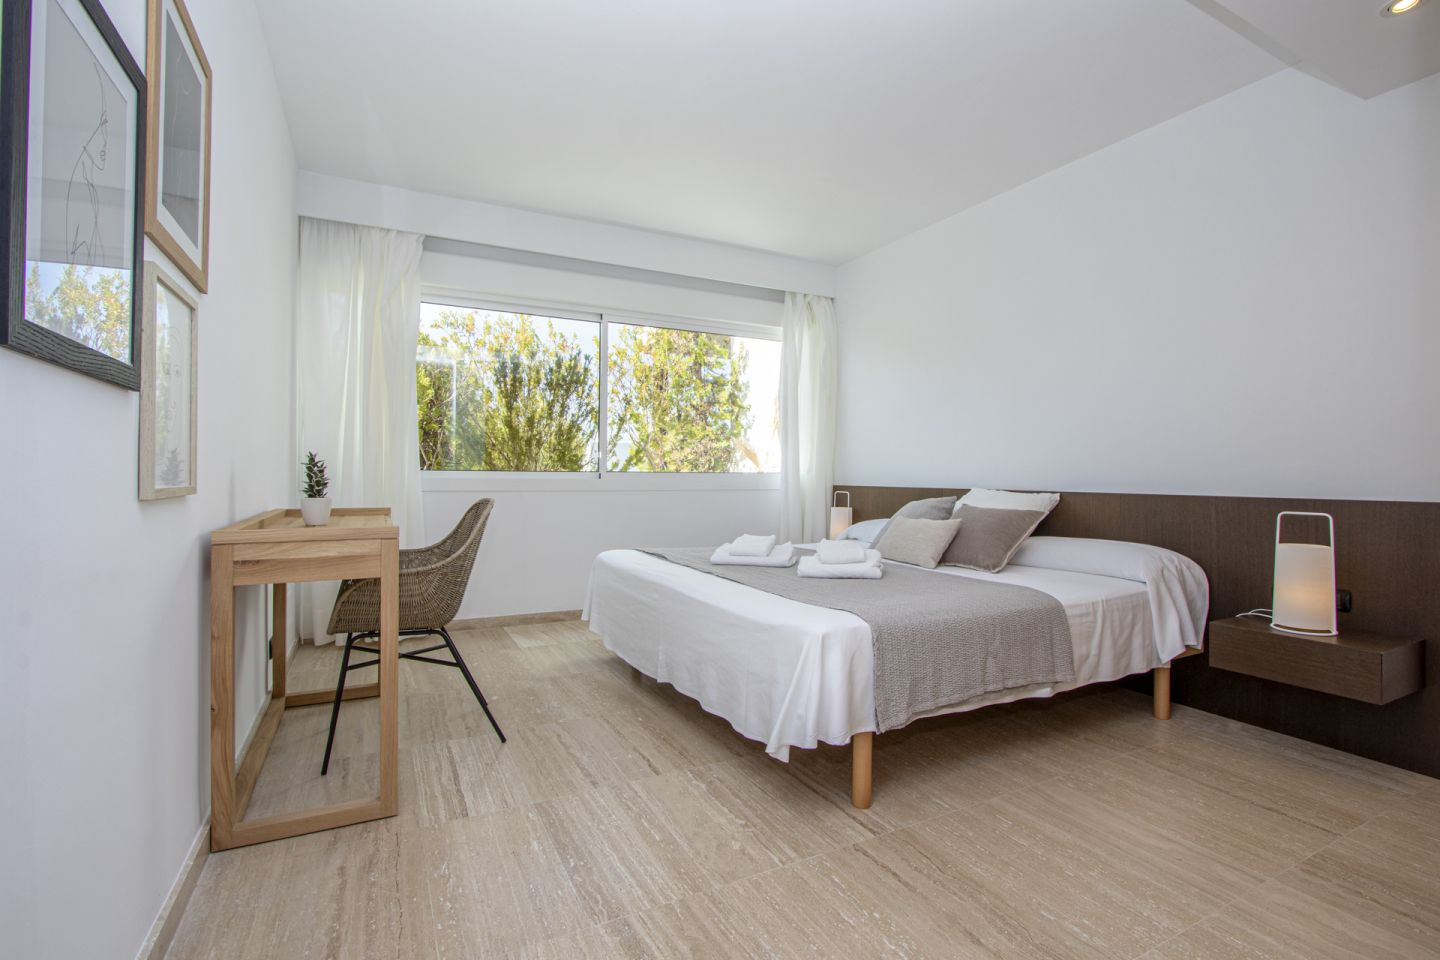 4 Bed Penthouse for sale in PUERTO POLLENSA 14